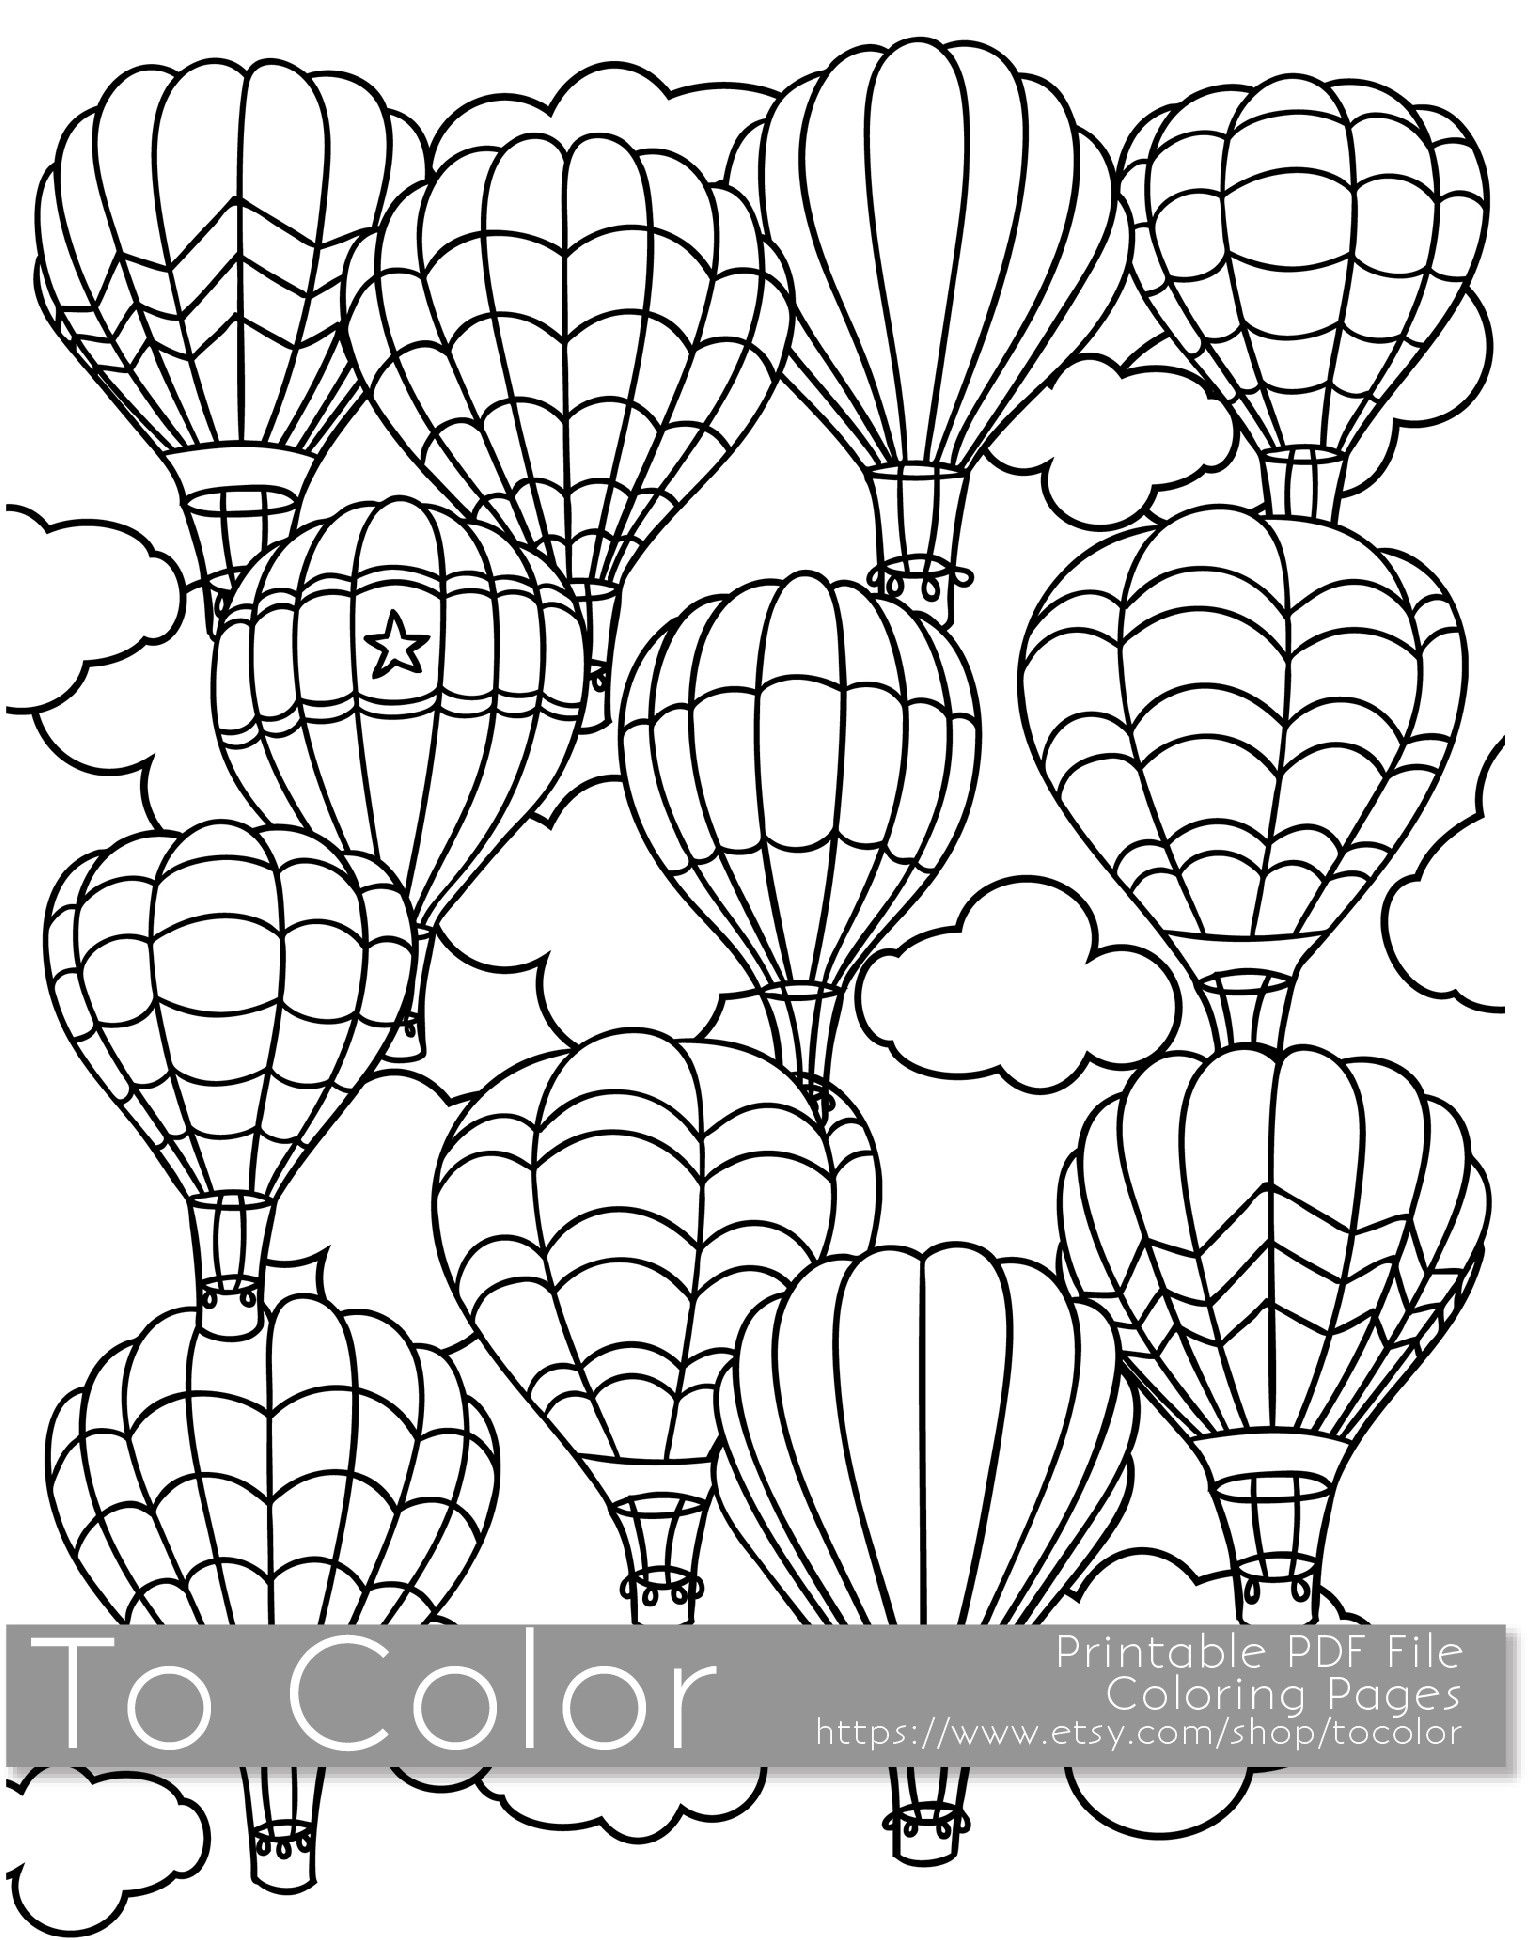 Hot air balloons coloring page - this is a printable PDF coloring ...